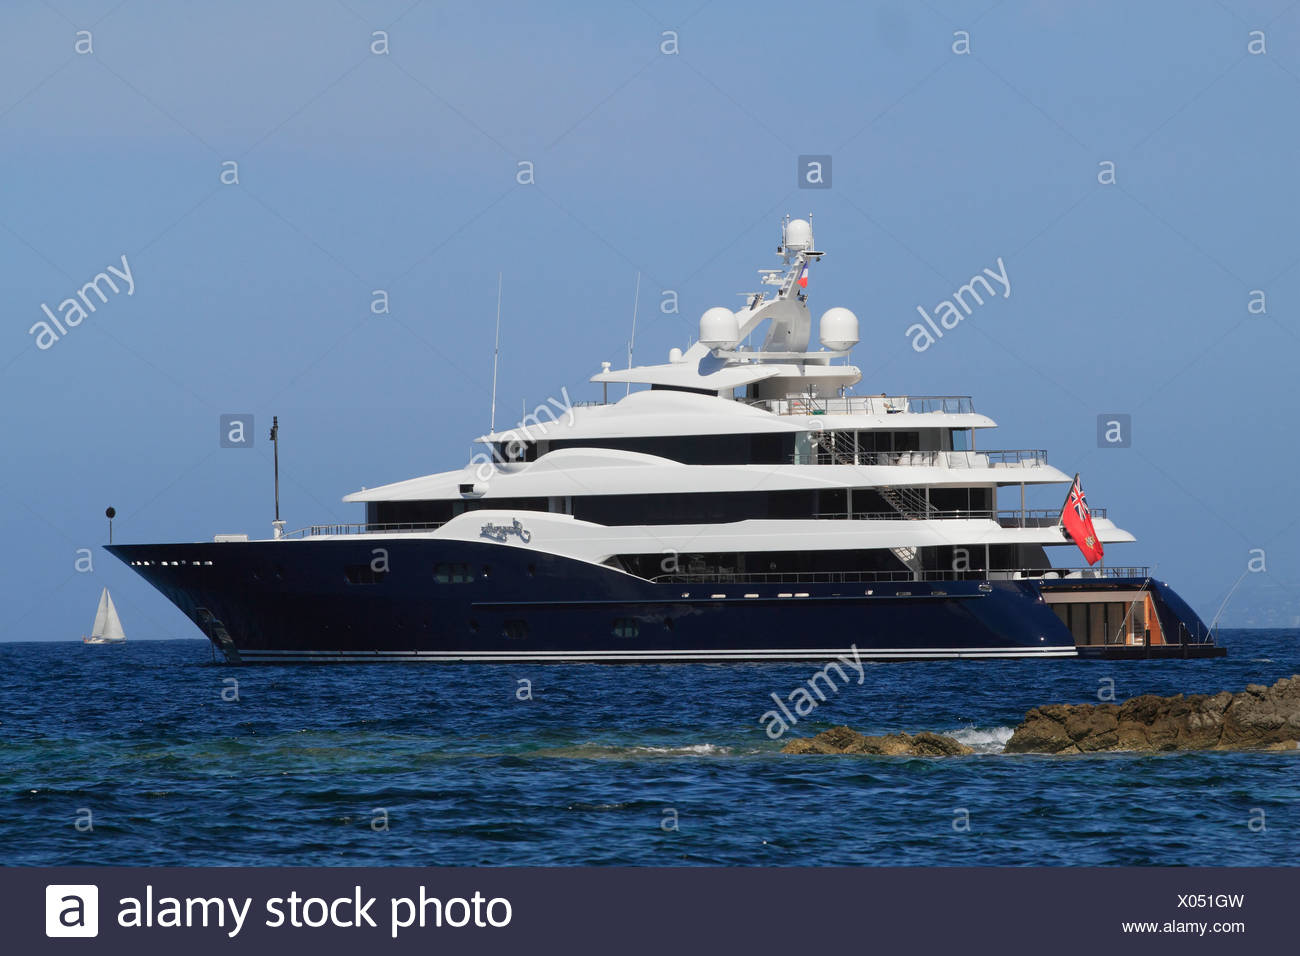 Amaryllis, a cruiser built by Abeking and Rasmussen, length: 78.43 meters, built in 2011, French Riviera, France, Europe Stock Photo